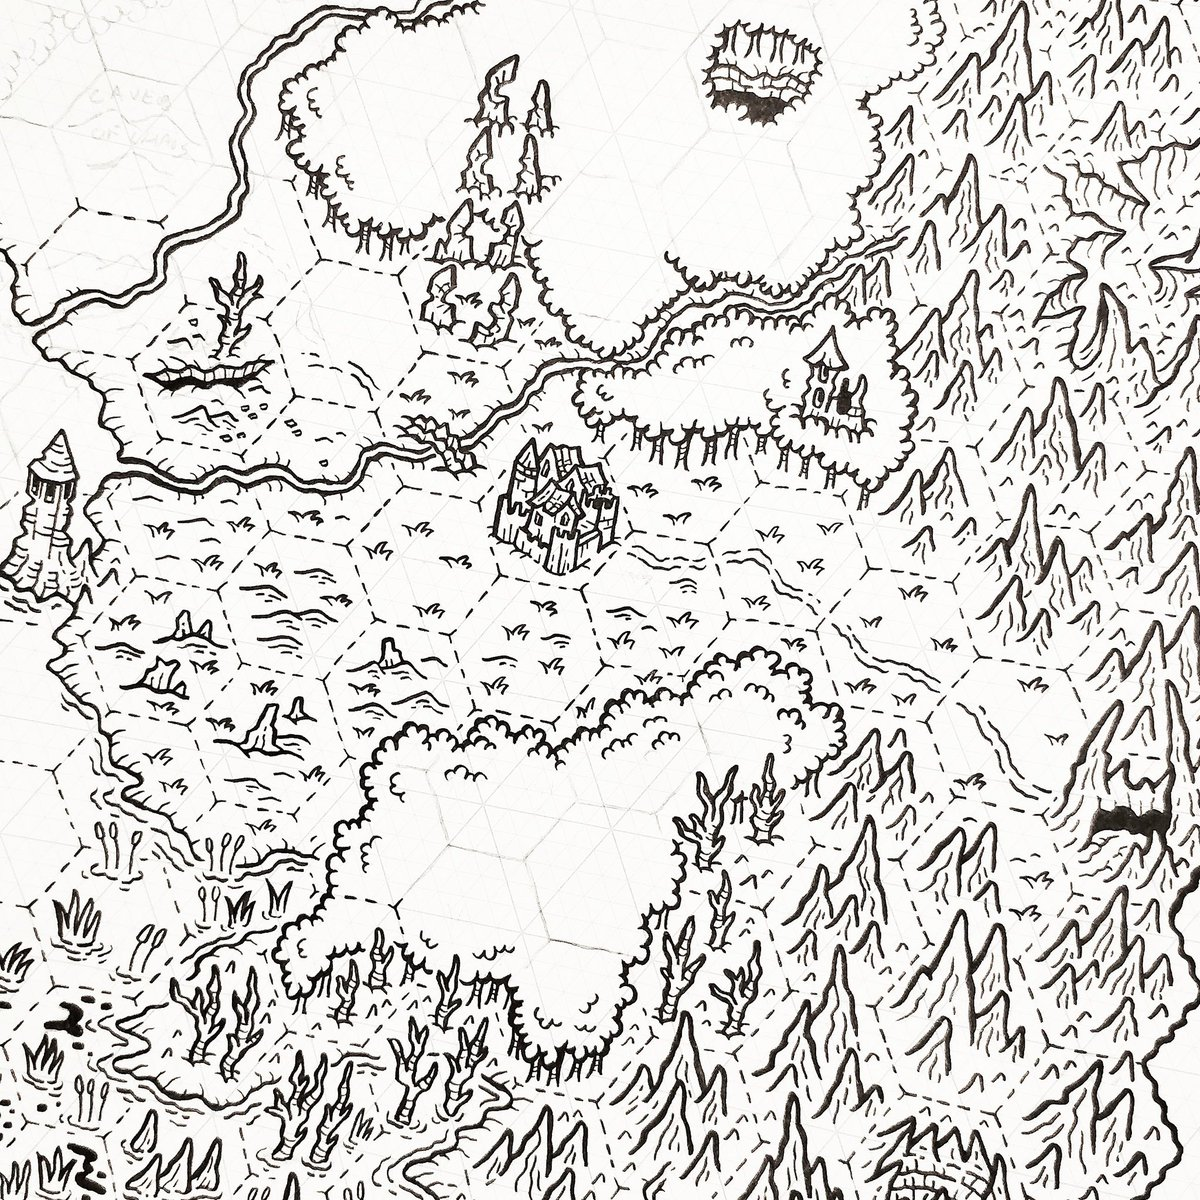 Slowly working towards POSSIBLY running a west marches type game, and of course I have to draw a map for it because, well that's just who I am right? #hexmap https://t.co/FThqcNhs4I